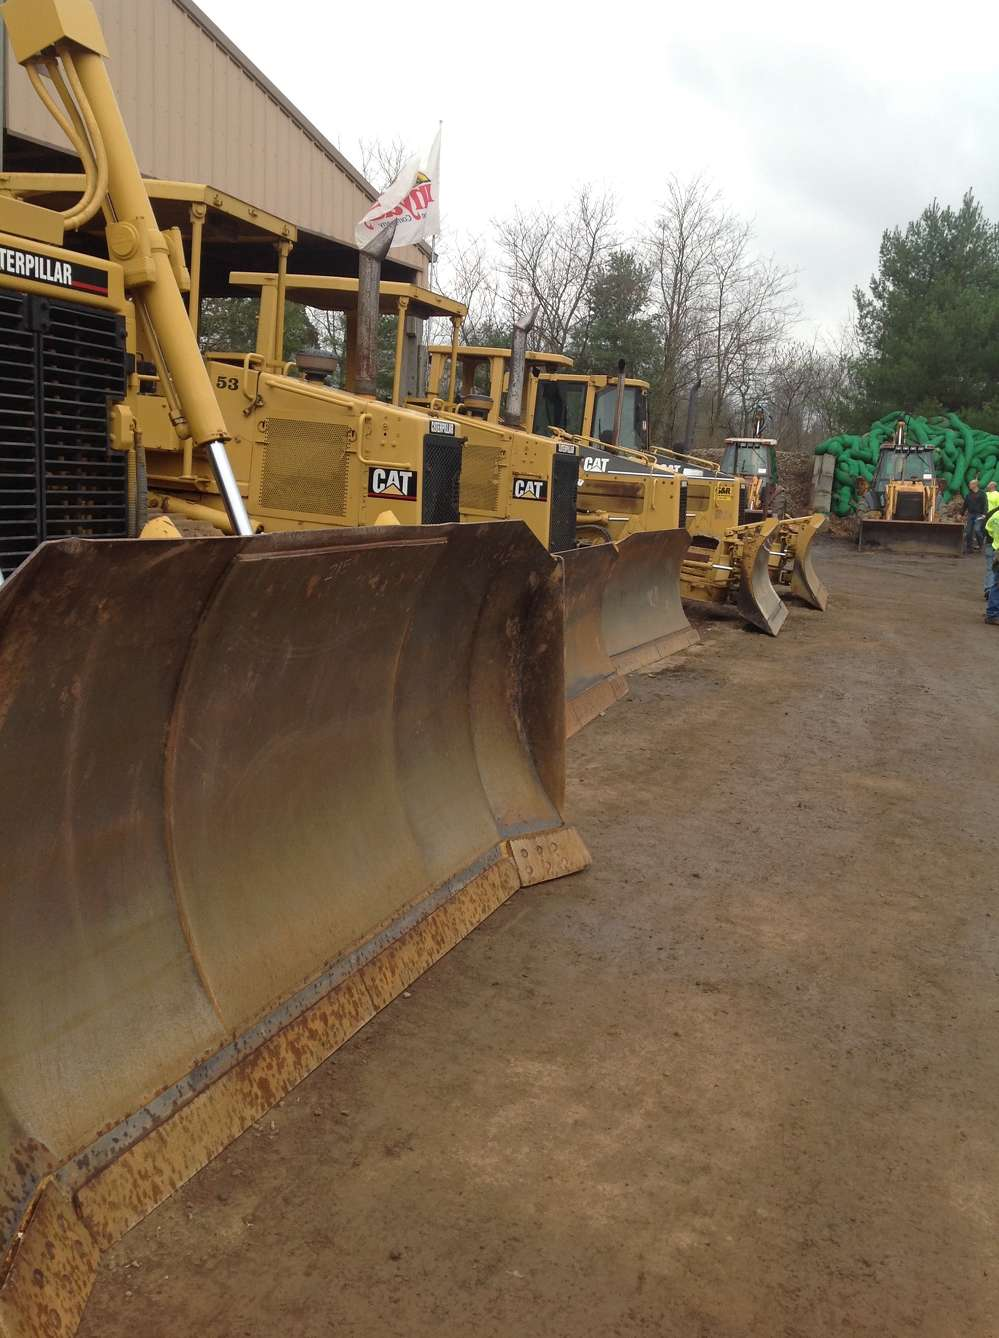 The sale featured a variety of equipment, including Cat dozers.